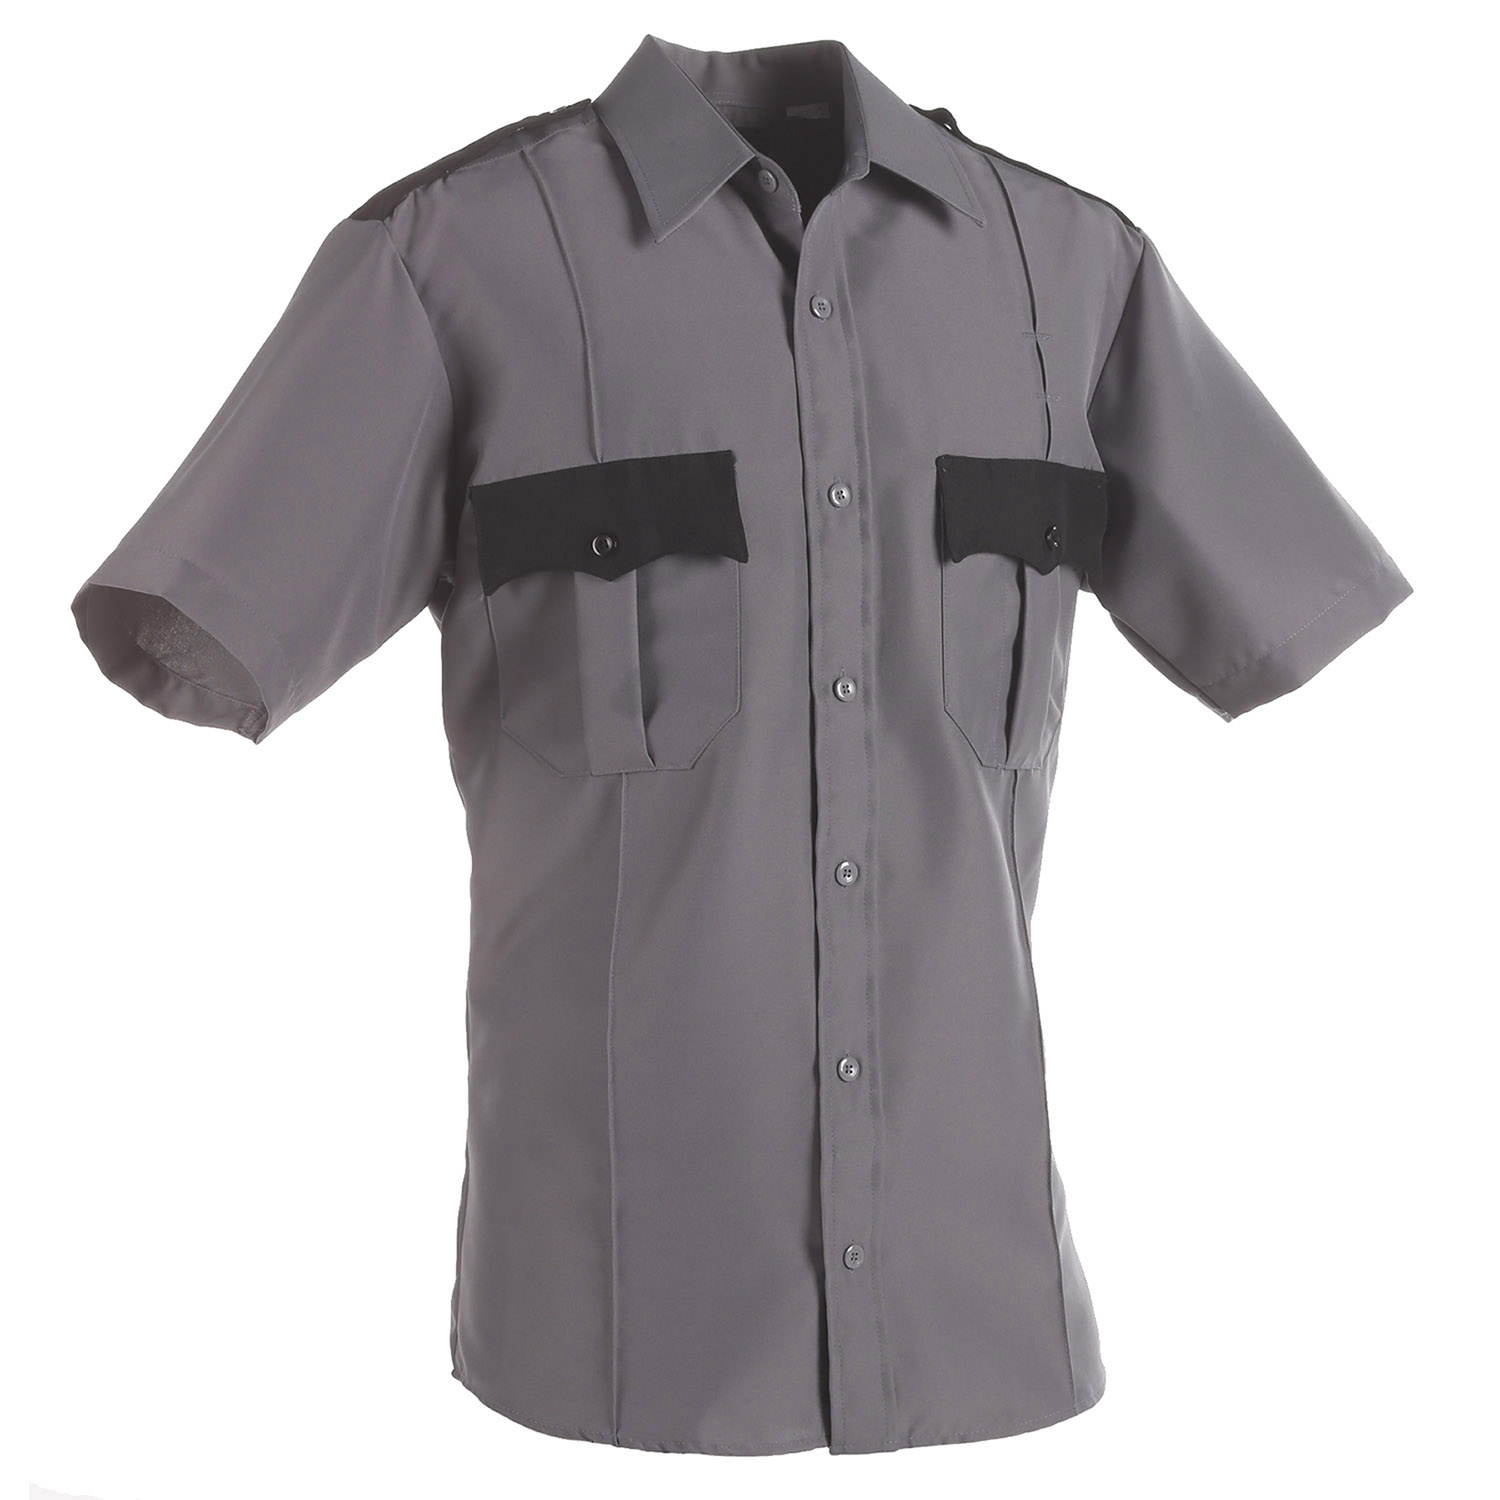 LawPro Two Tone Poly Cotton Short Sleeve Shirt